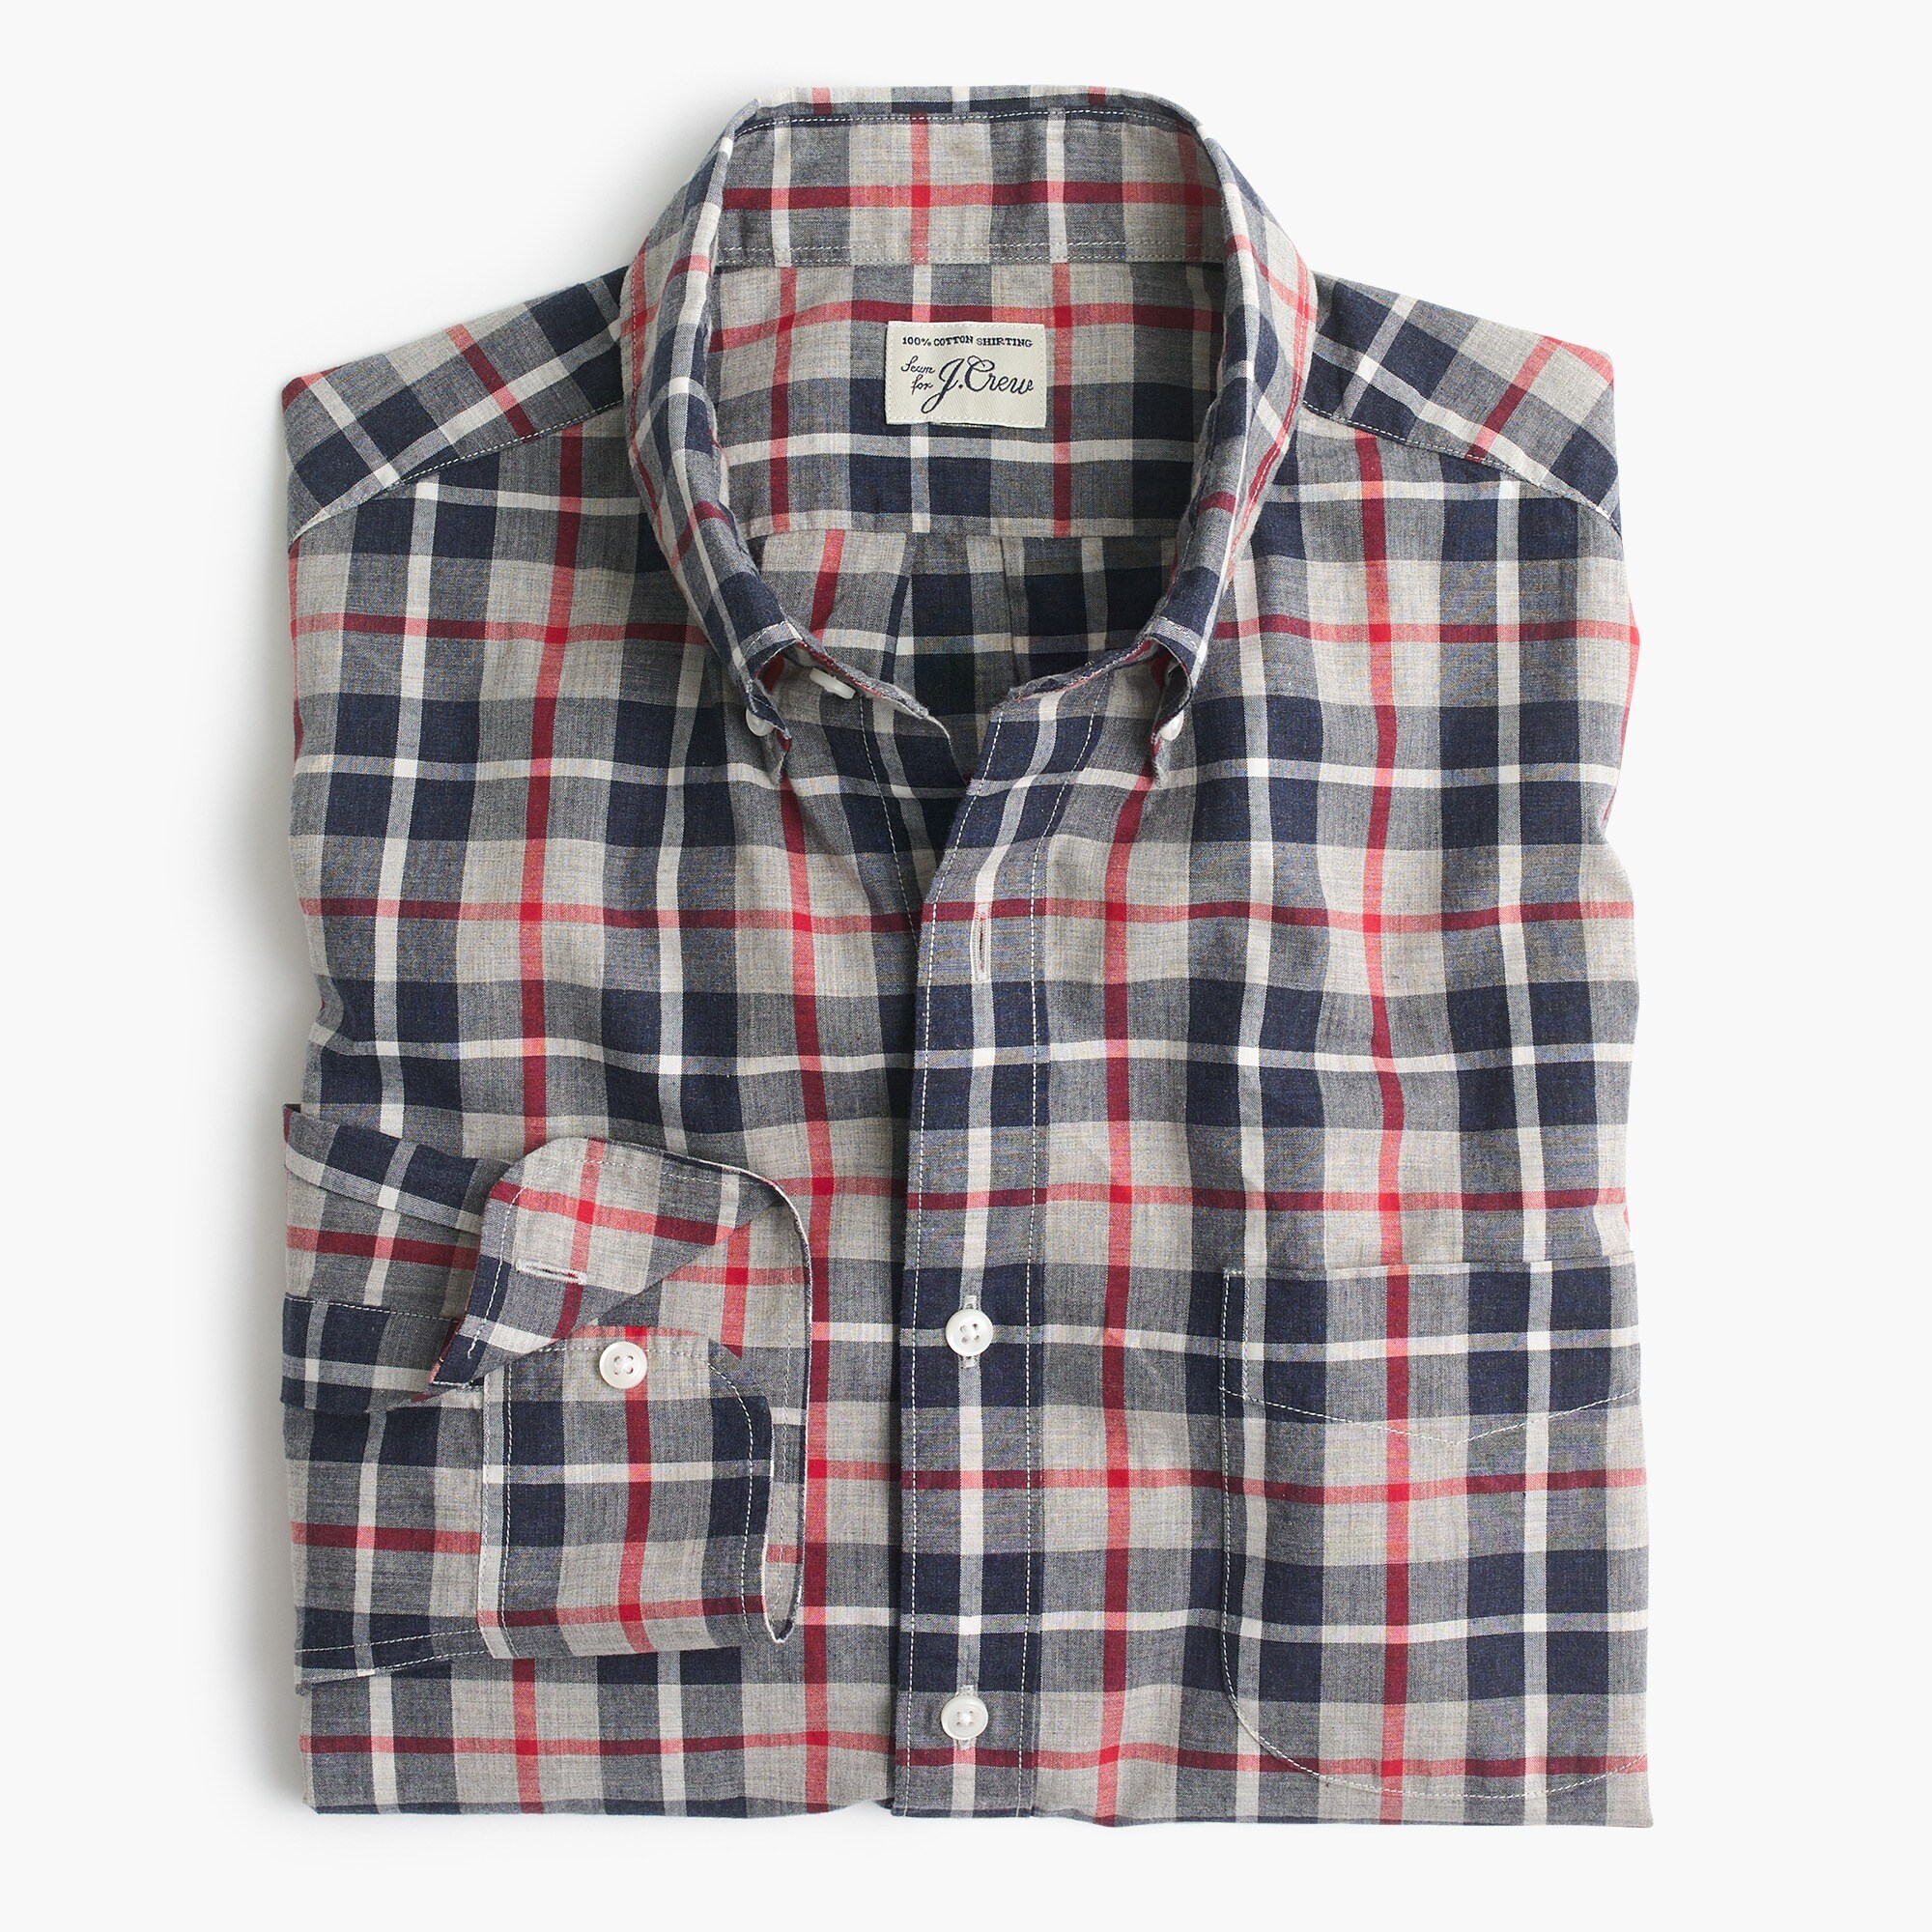 Image 4 for Slim Secret Wash shirt in heather poplin grey and red plaid